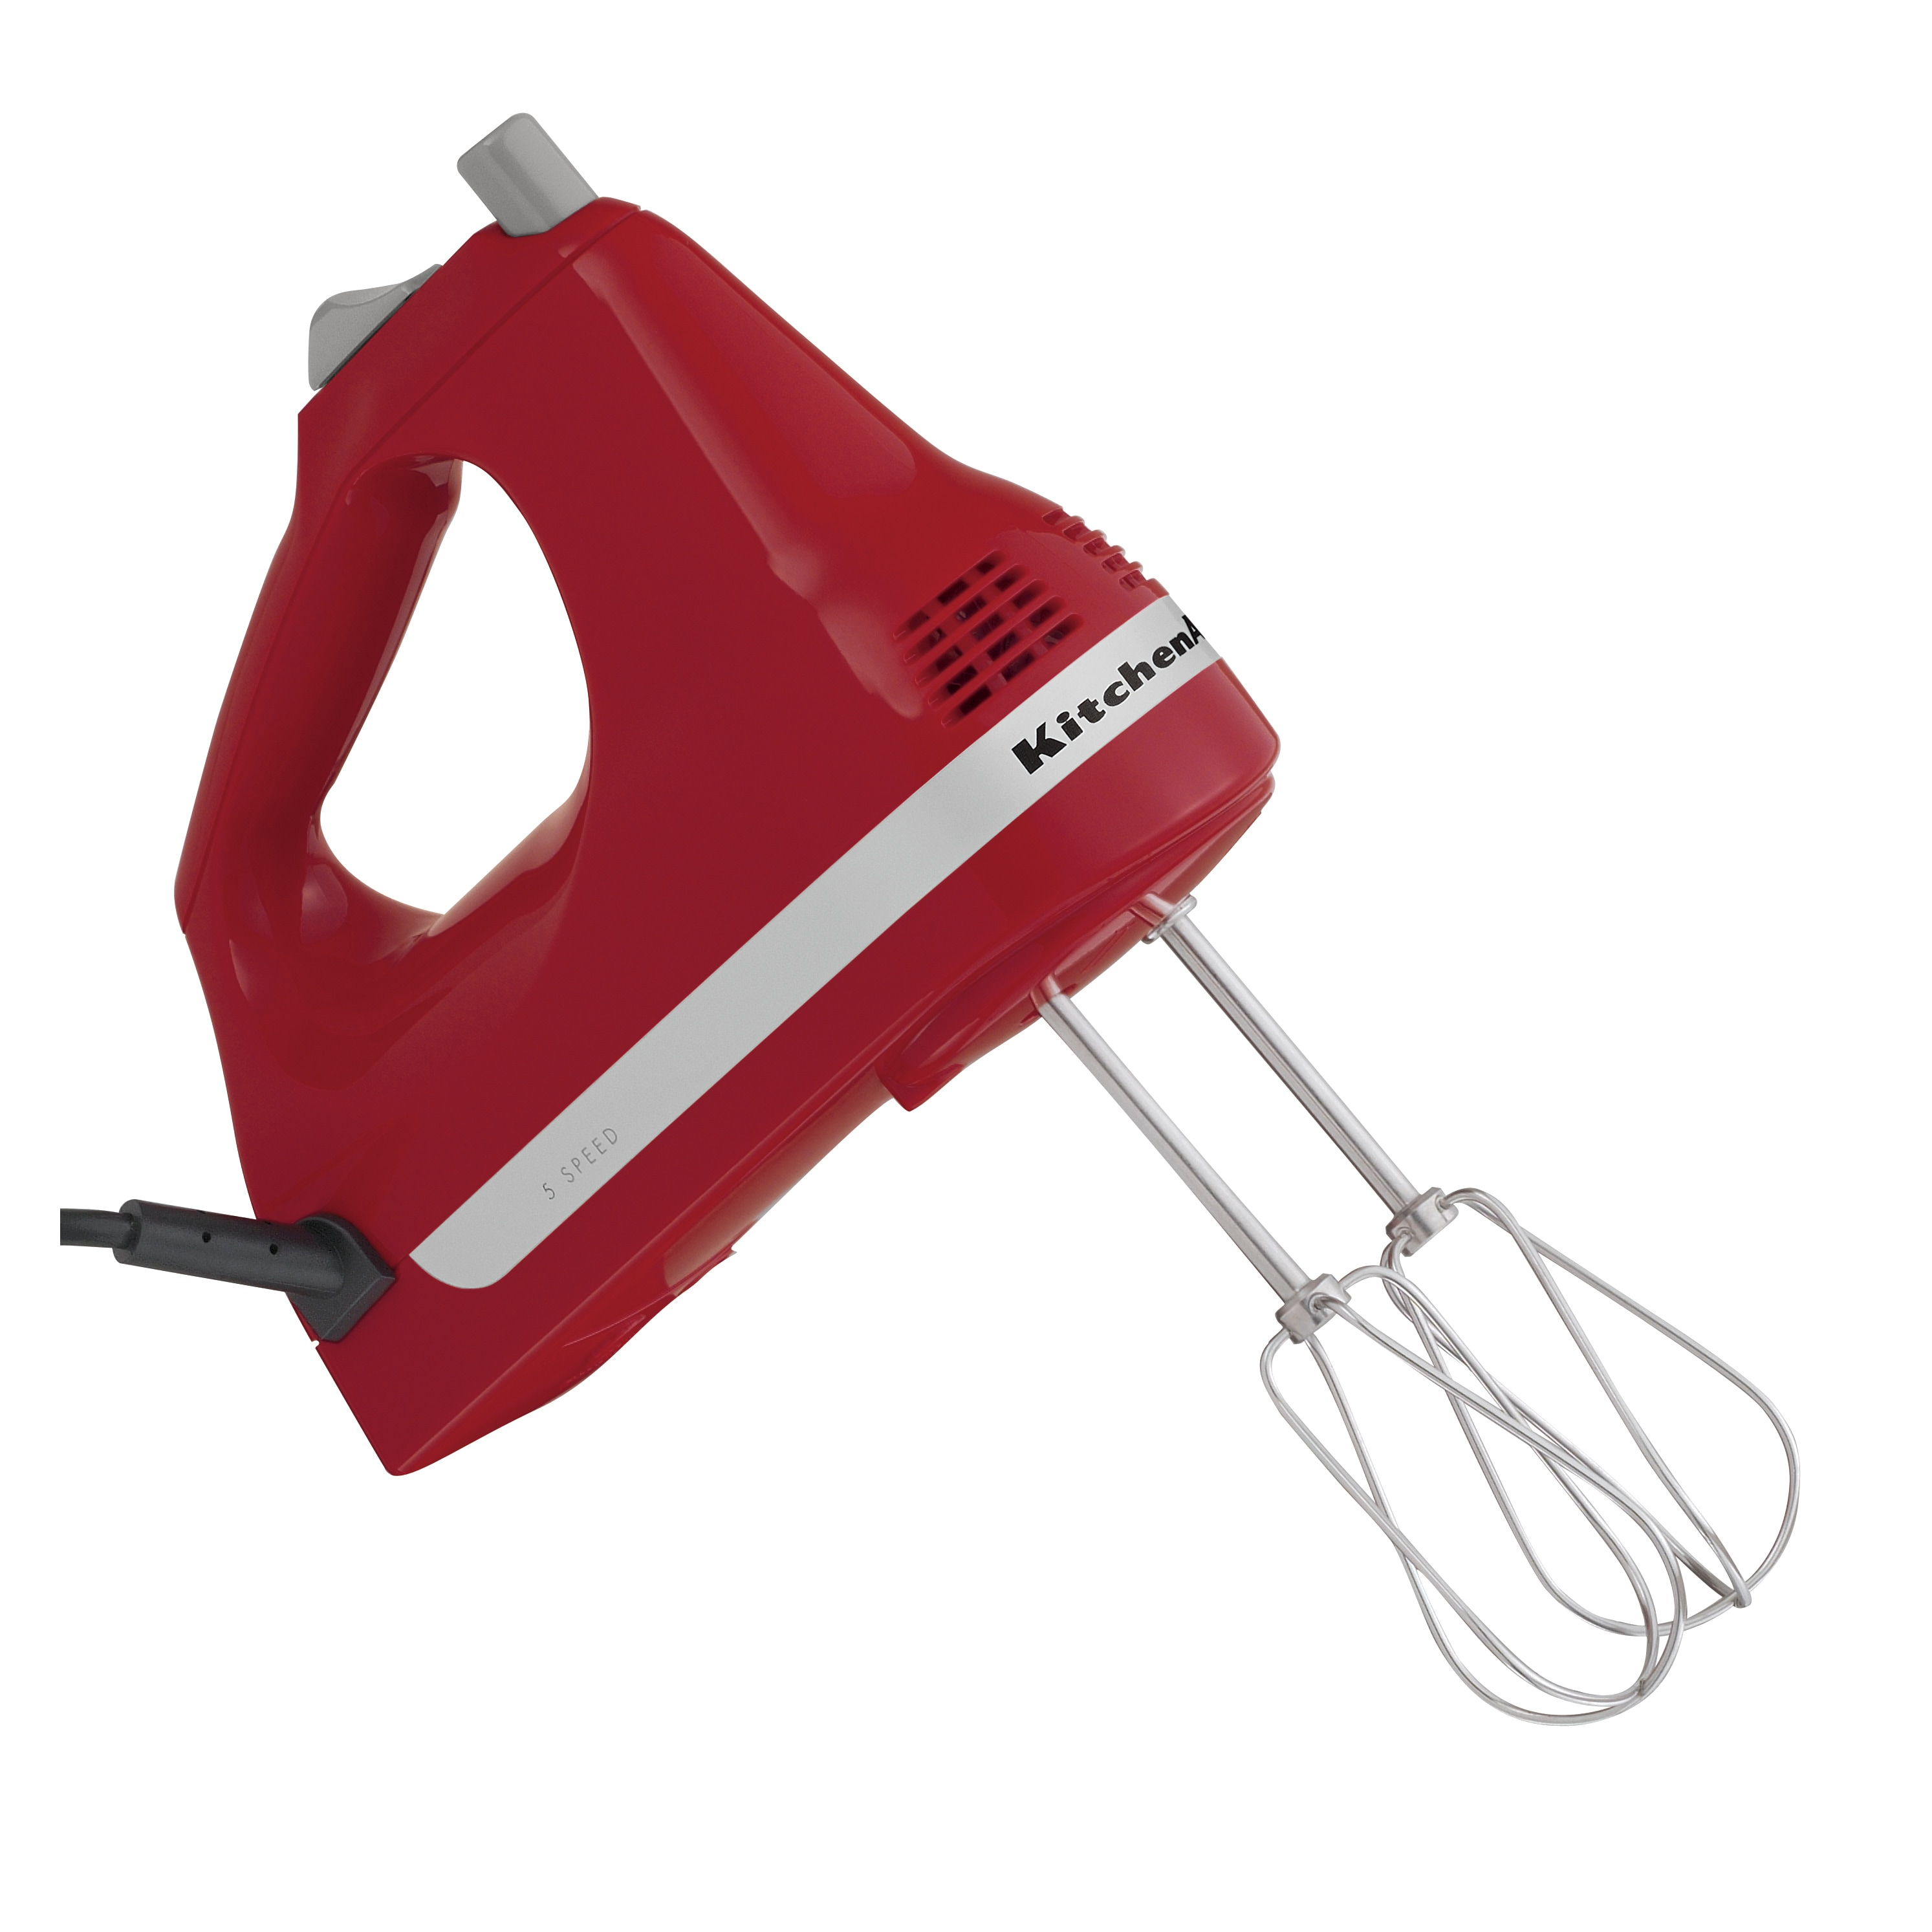 KitchenAid RRKHM5ER Empire Red 5-speed Ultra Power Hand Mixer (Refurbished) at Sears.com